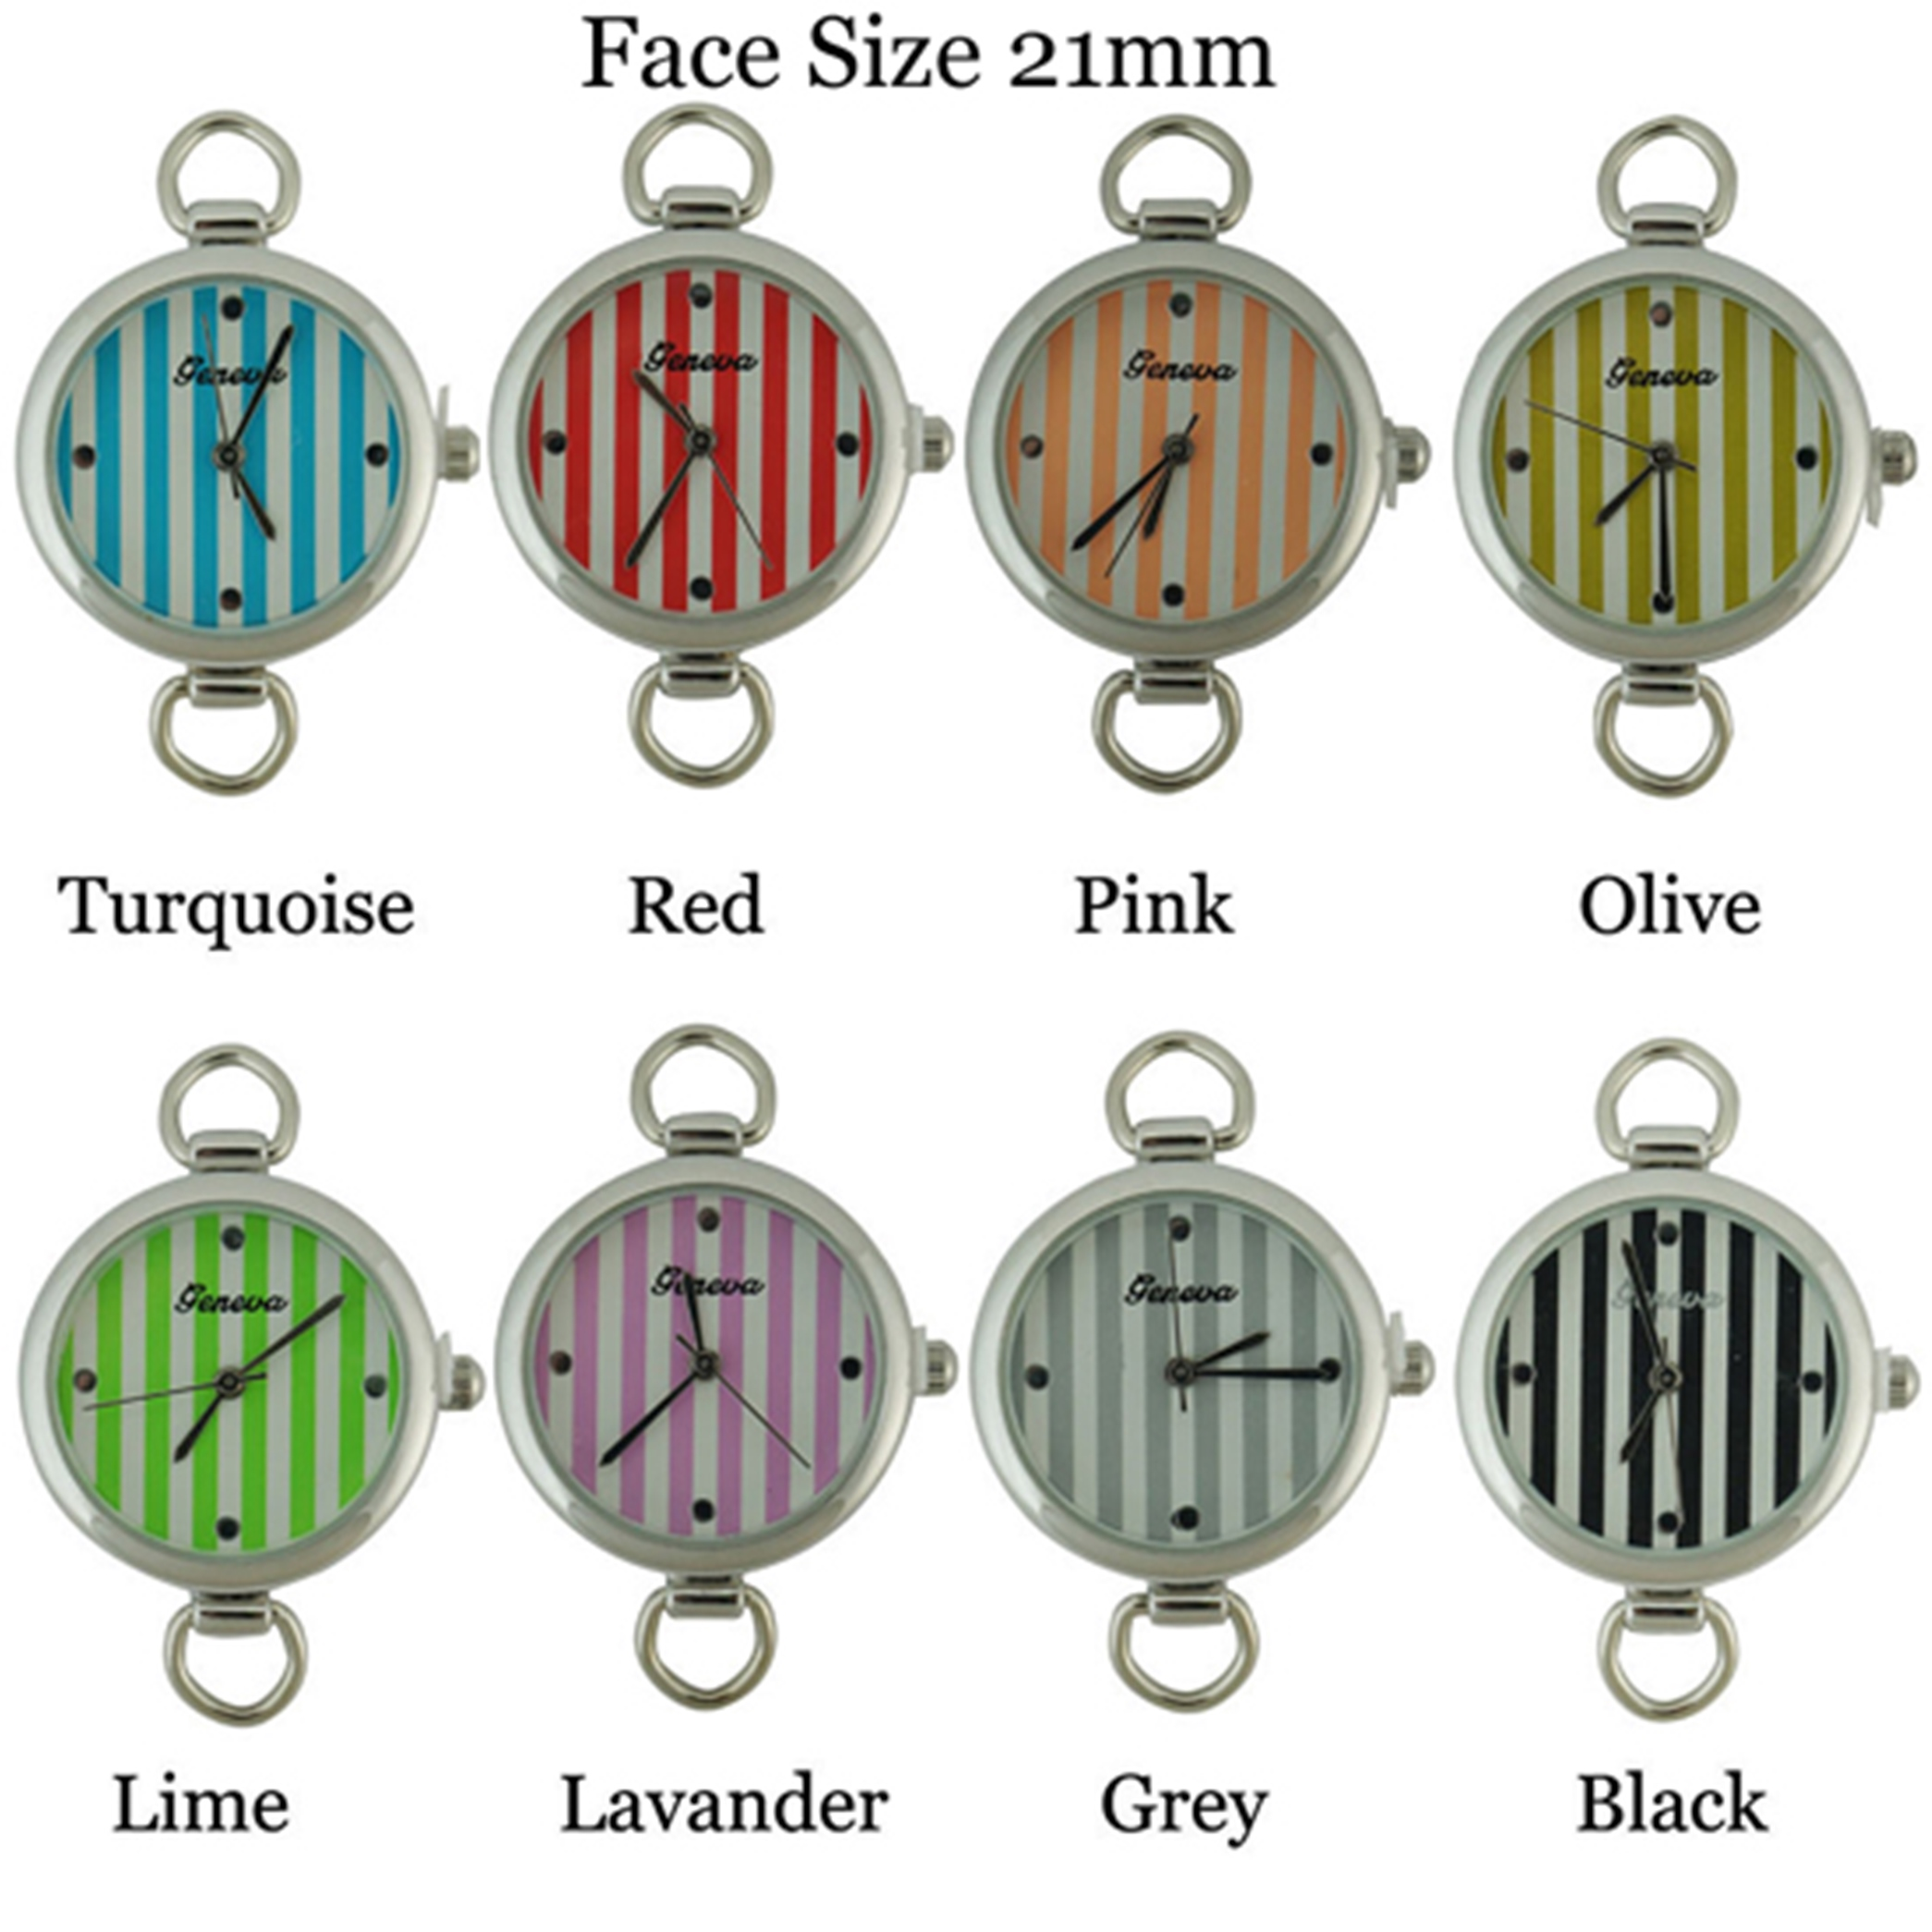 Women's 24mm Circle Dail with Color full Line Face